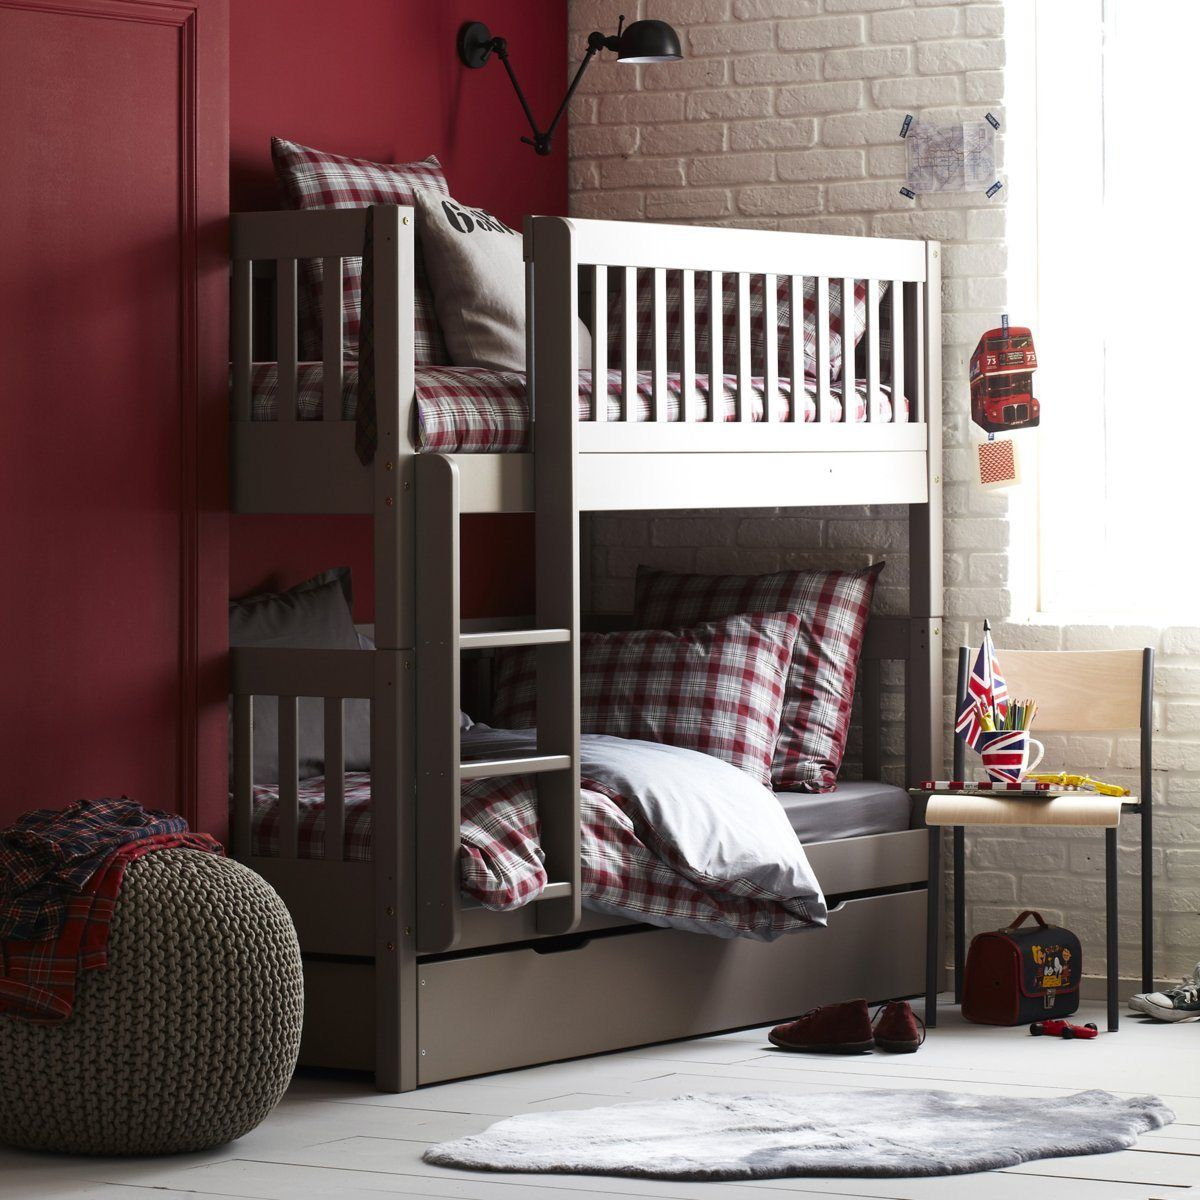 lits superpos s et tiroir lit diablotin am pm for kids pinterest. Black Bedroom Furniture Sets. Home Design Ideas